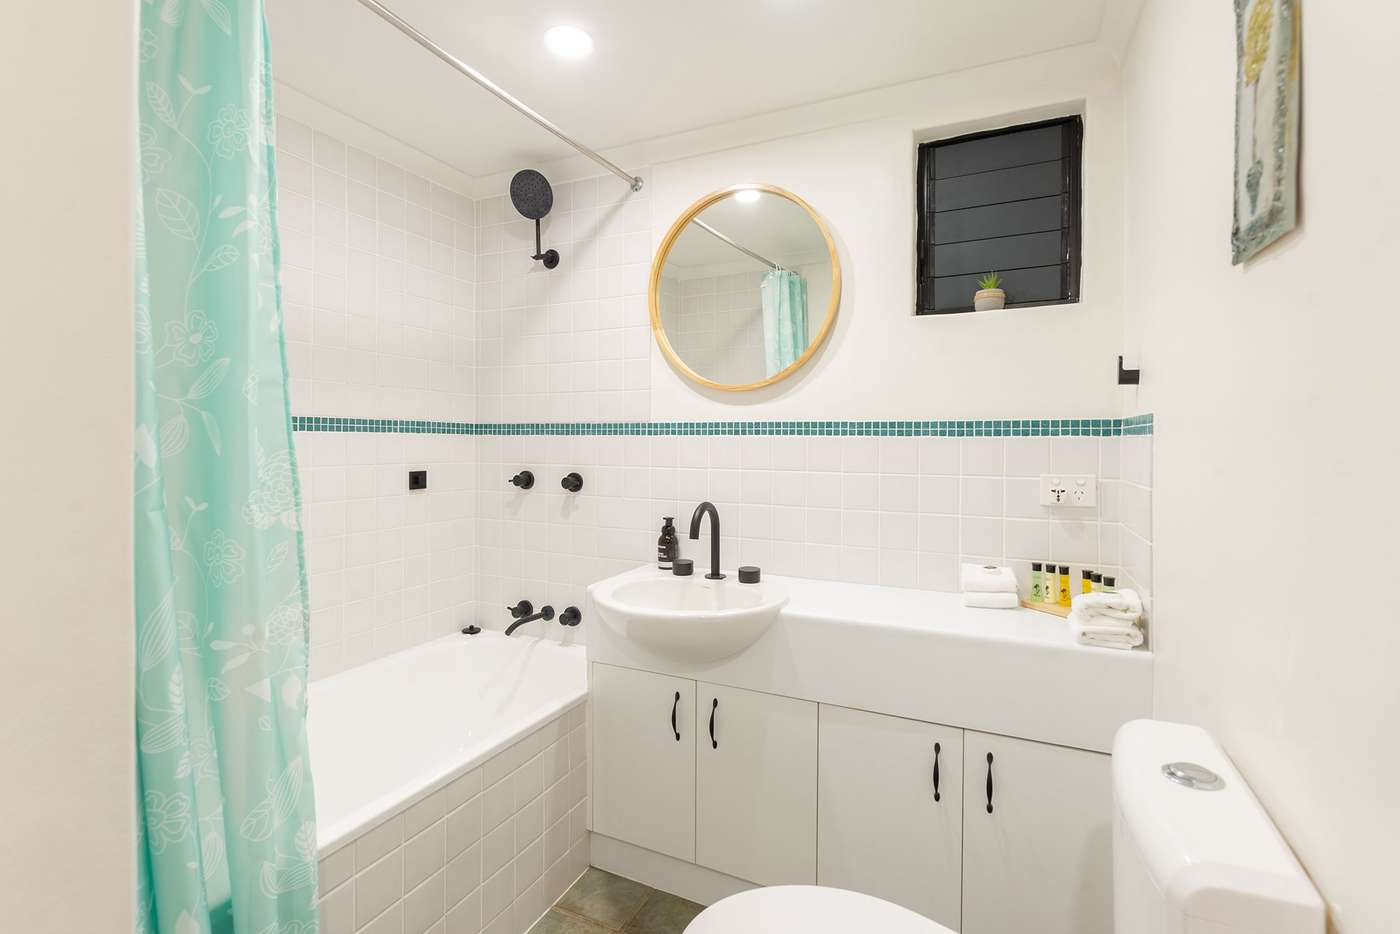 Sixth view of Homely apartment listing, 8/62-64 Davidson Street, Port Douglas QLD 4877